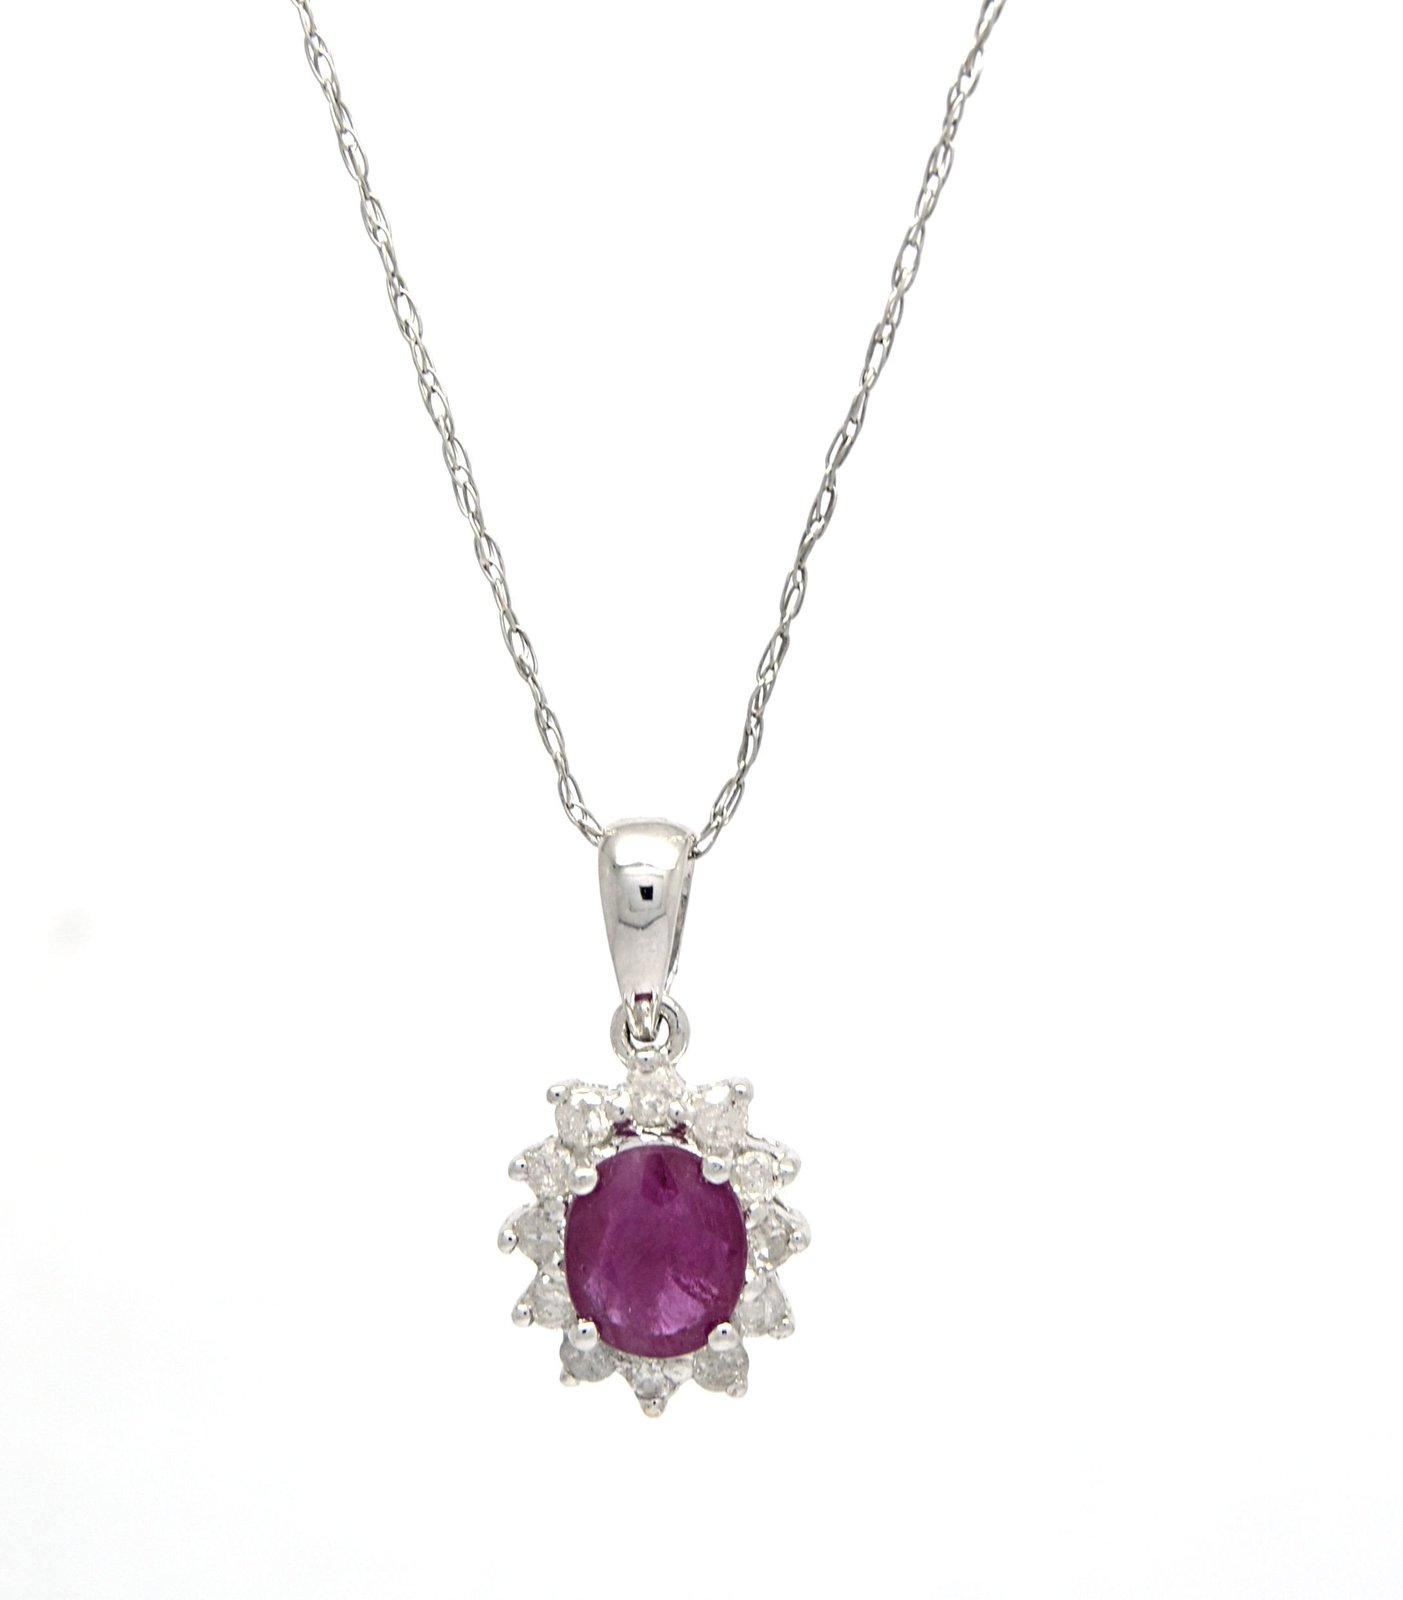 14K White Gold Genuine Ruby Diamond Pendant with 10 K Cable Chain